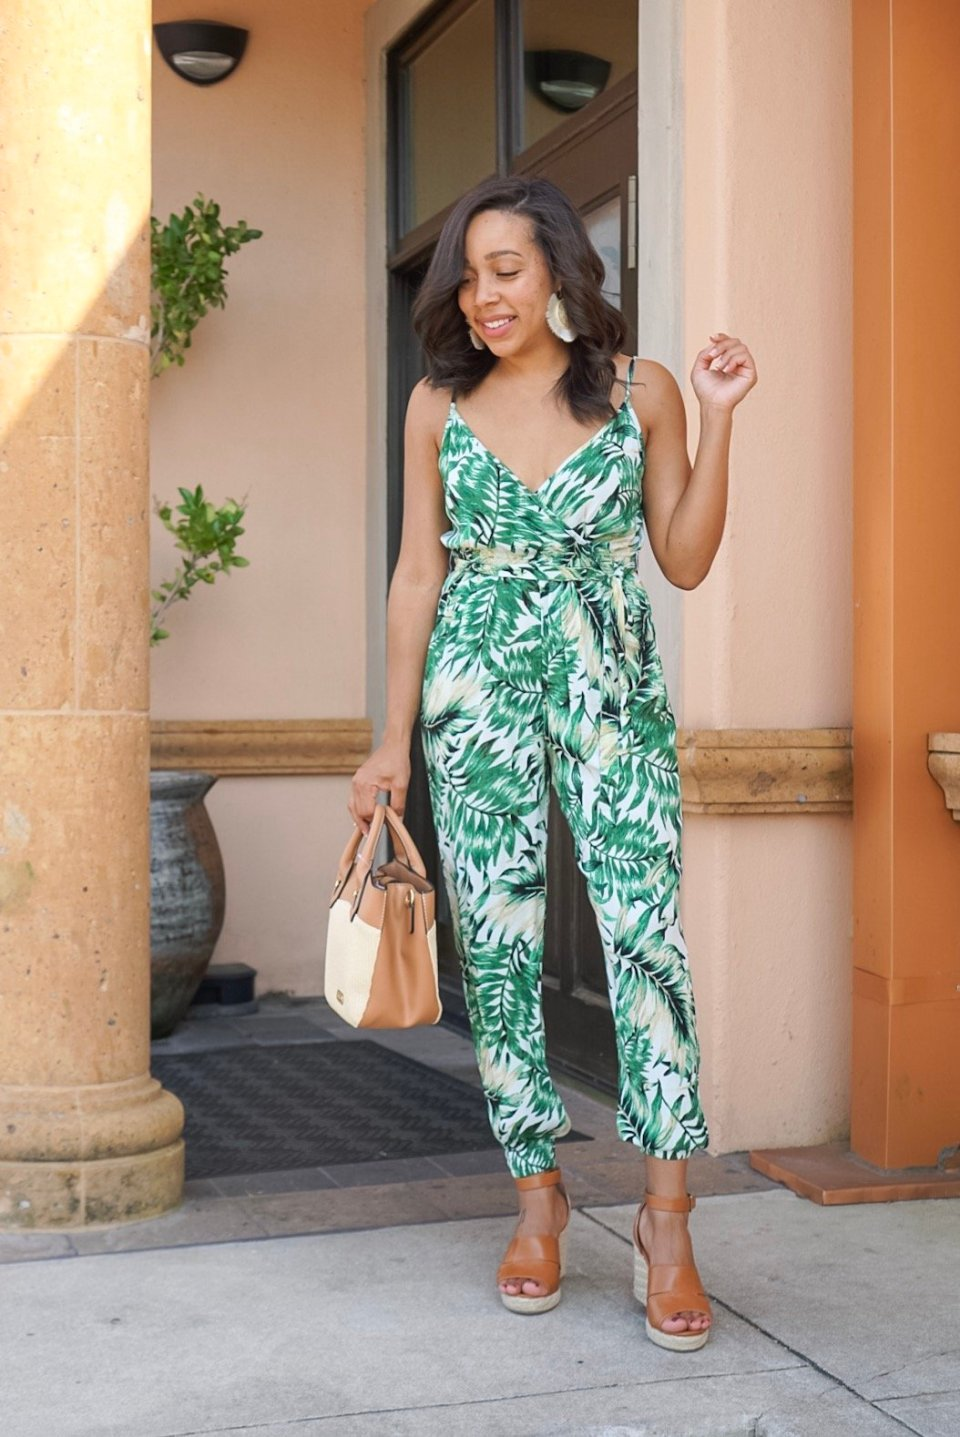 Rompers and Jumpsuits are my go to trend this season and I found some great options at Burkes Outlets, most for under $20